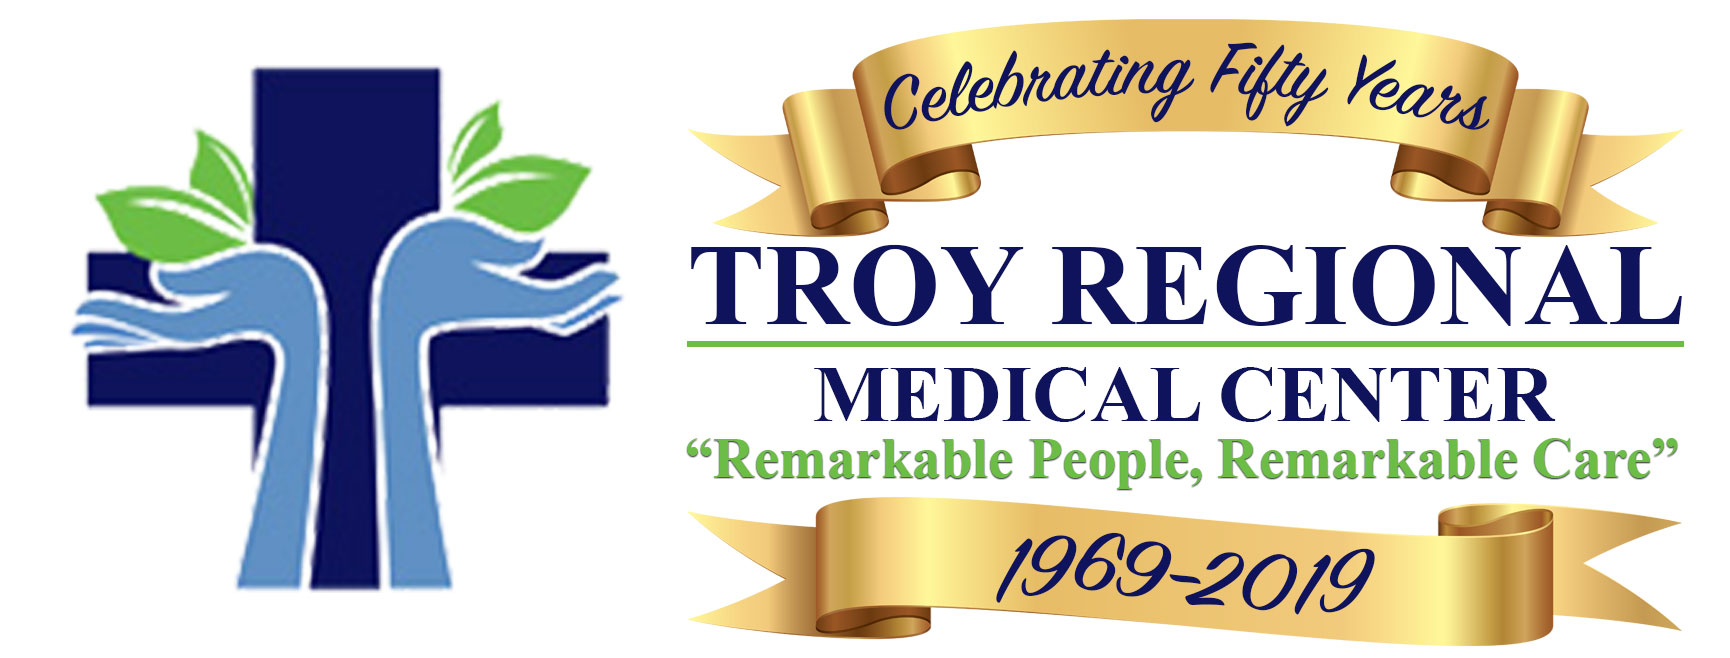 Celebrating 50 years! 1969-2019 